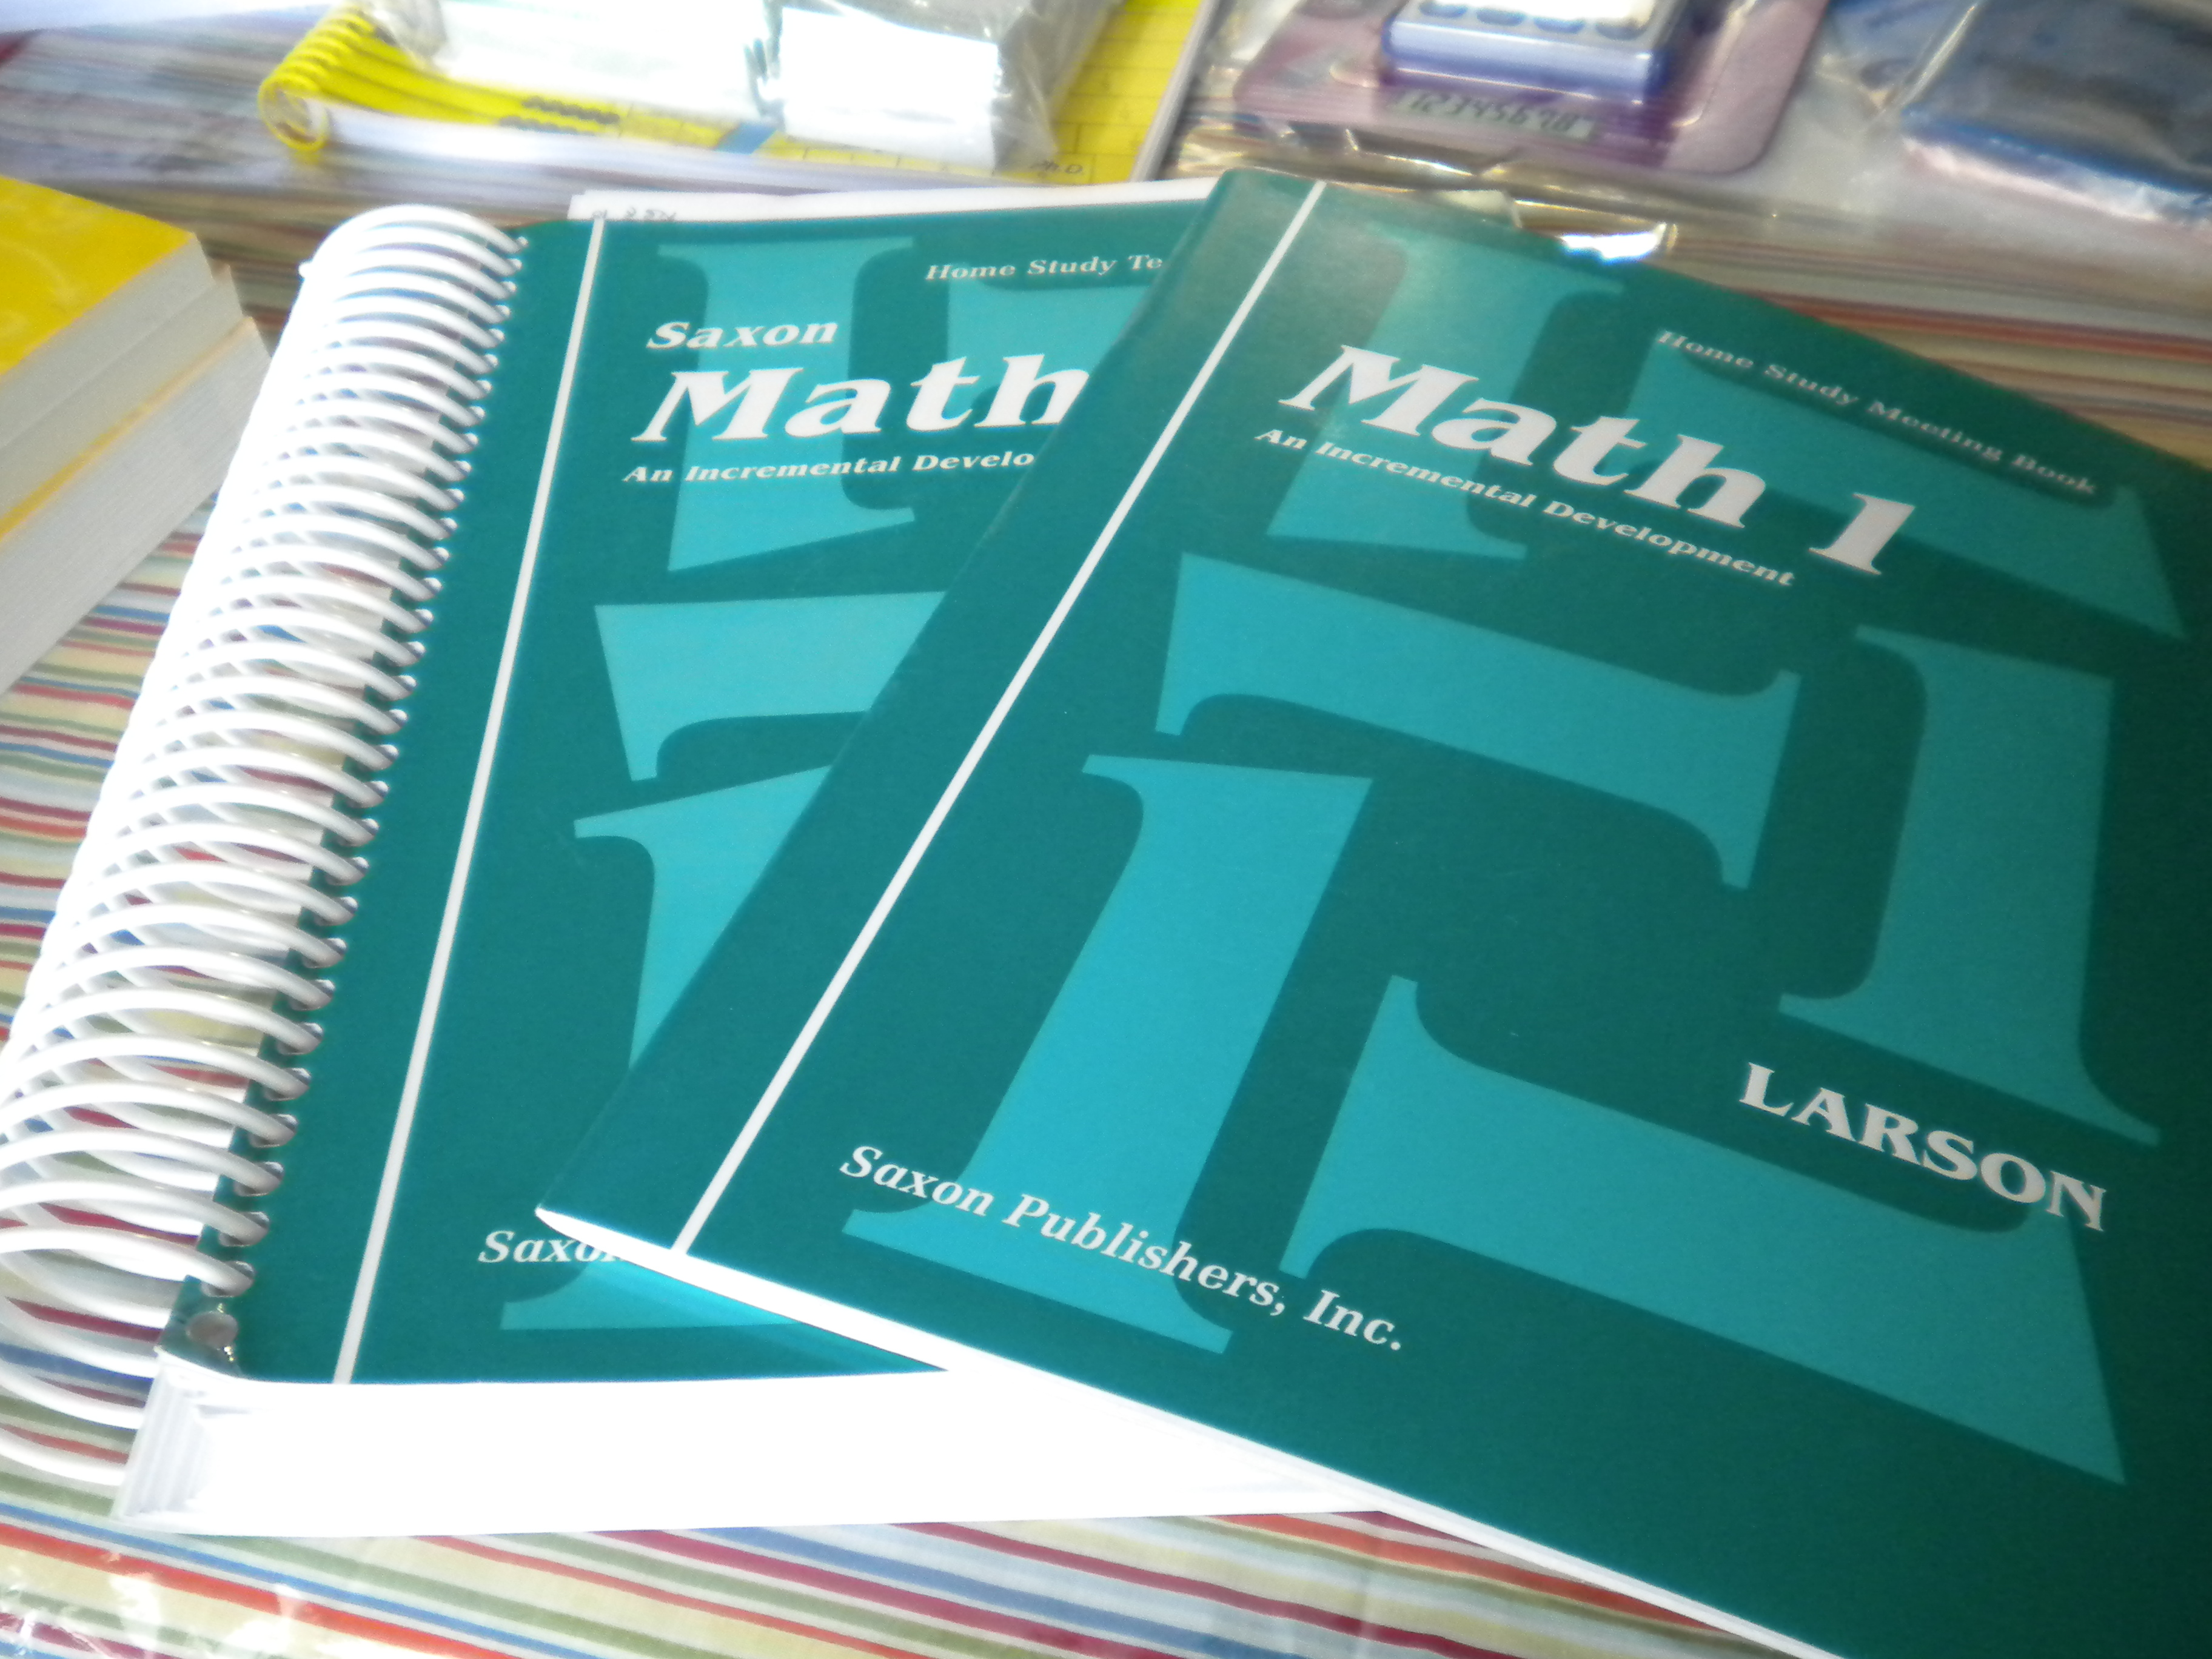 Curriculum for Sale 5/26/12 | My Soul Doth Delight…